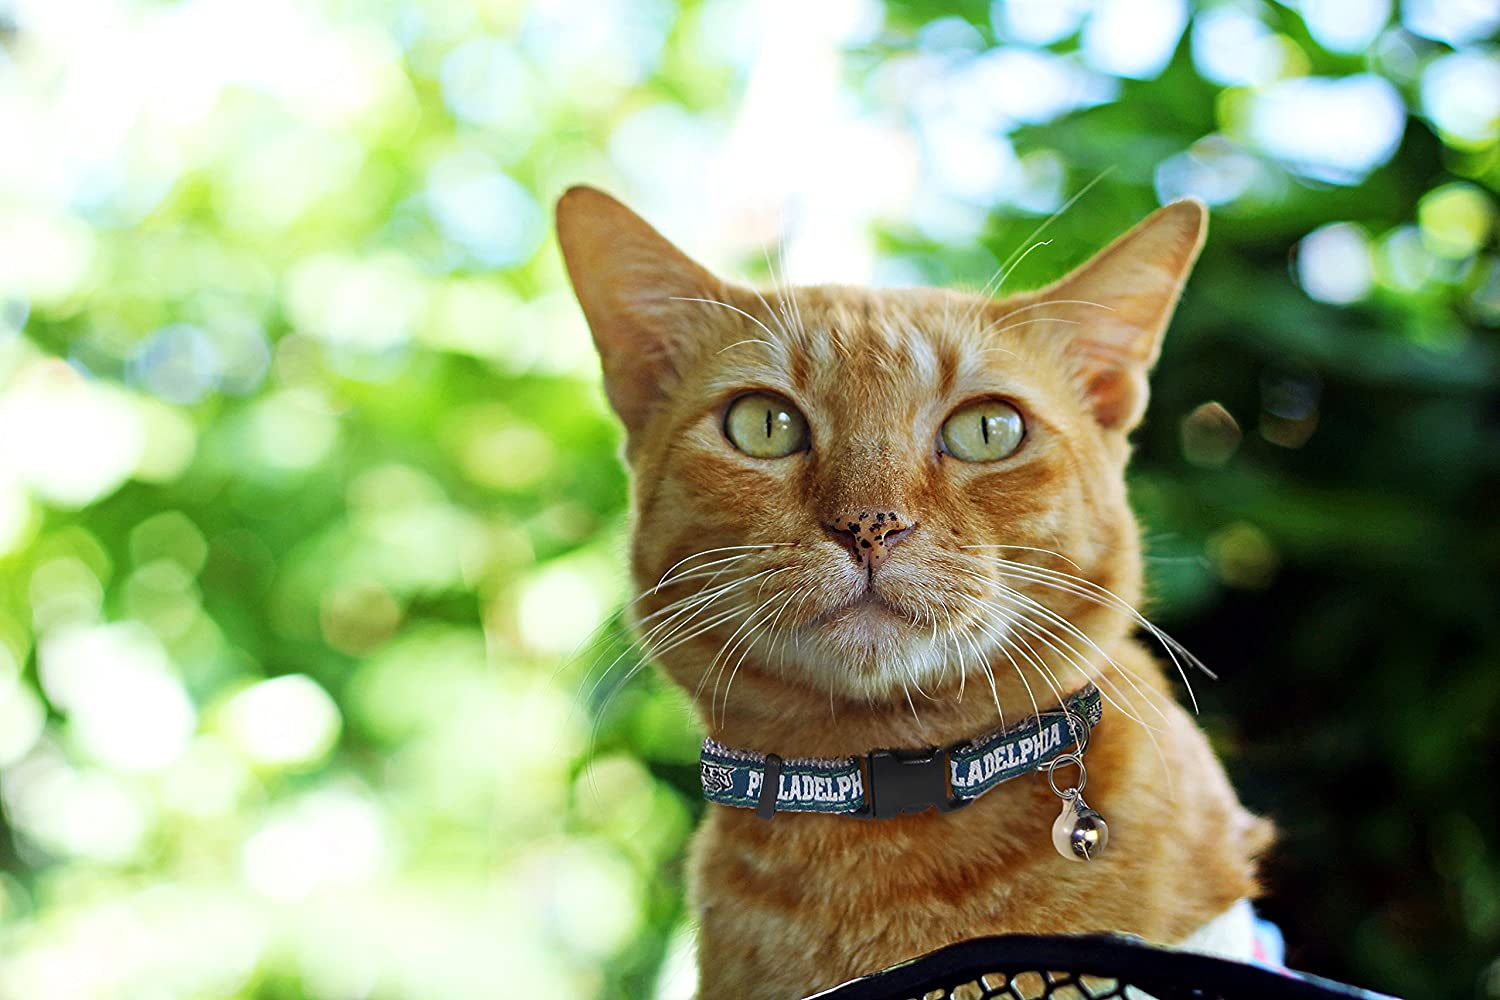 Amazon.com   Pets First NFL CAT Collar. - Philadelphia Eagles CAT Collar. -  Strong   Adjustable Football Cat Collars with Metal Jingle Bell   Pet  Supplies 6e8ccbbc9